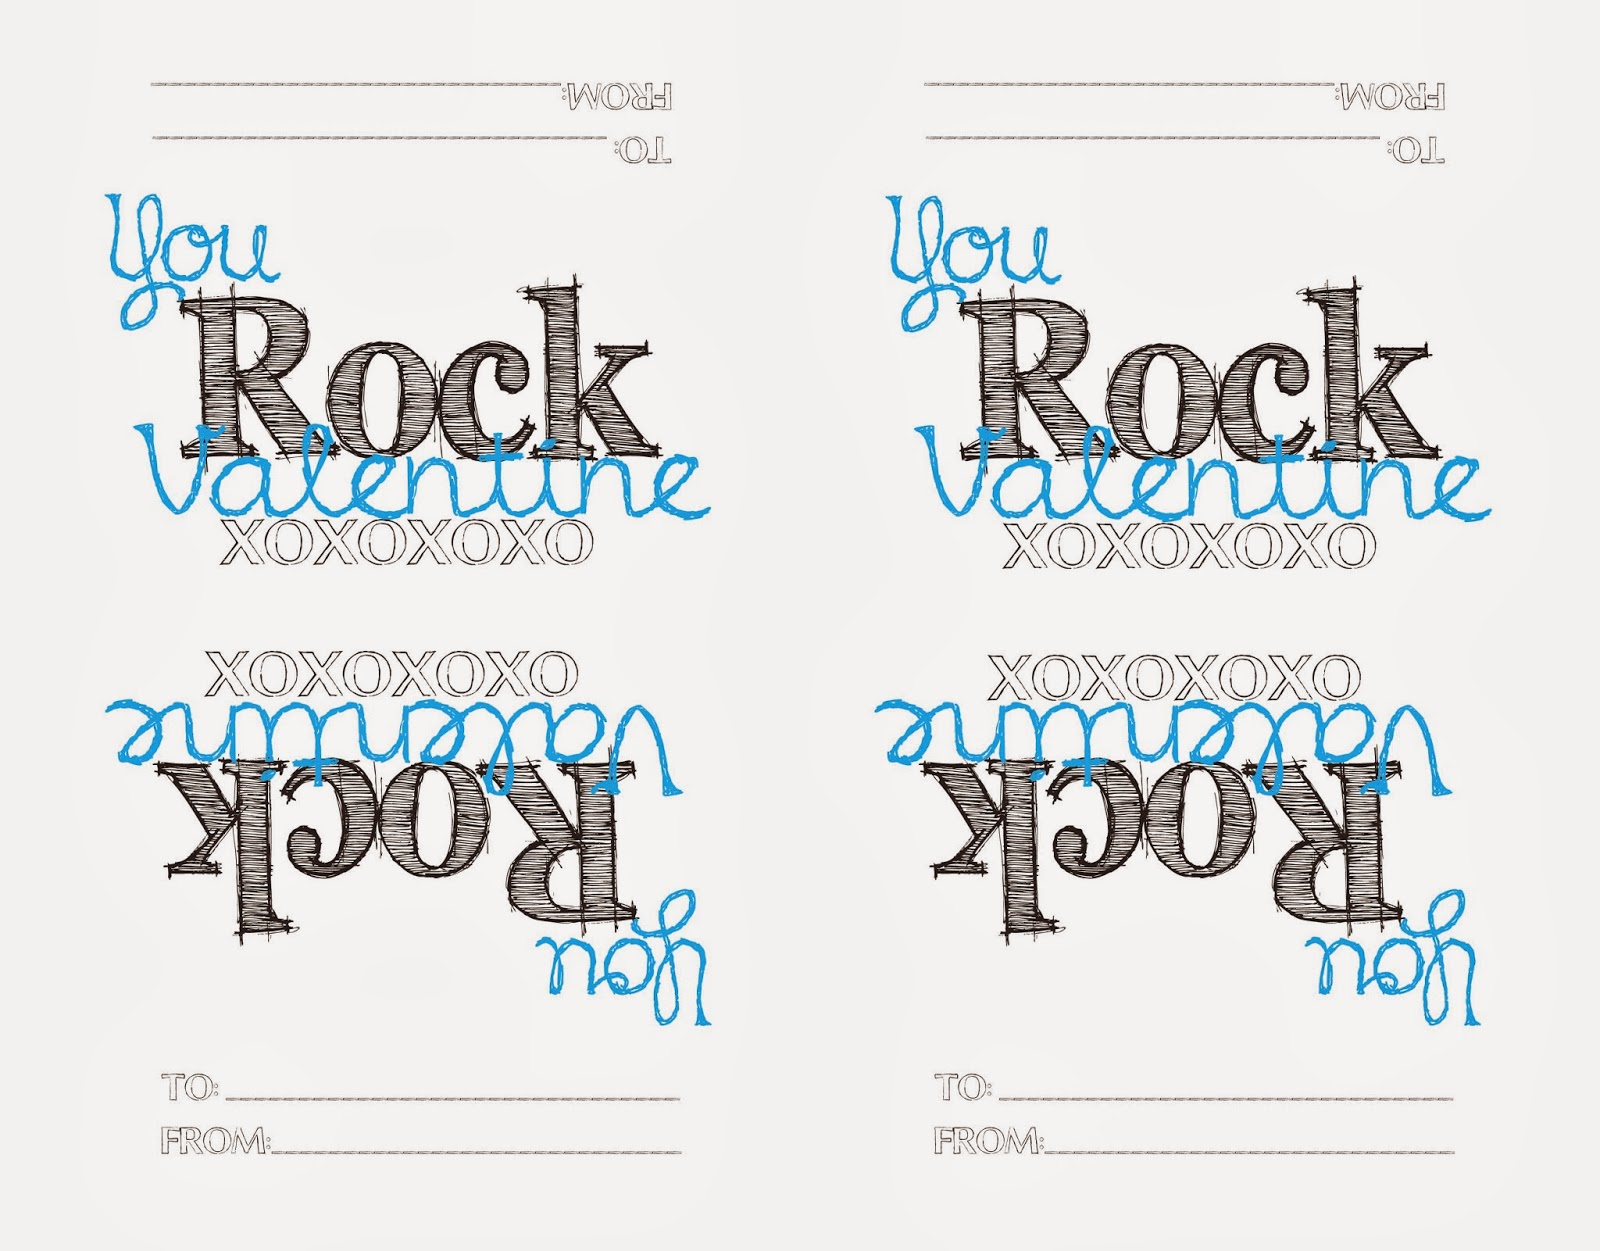 image relating to You Rock Valentine Printable identified as Up-Cycled Printable Treasures: Printable Valentine - POP Rocks